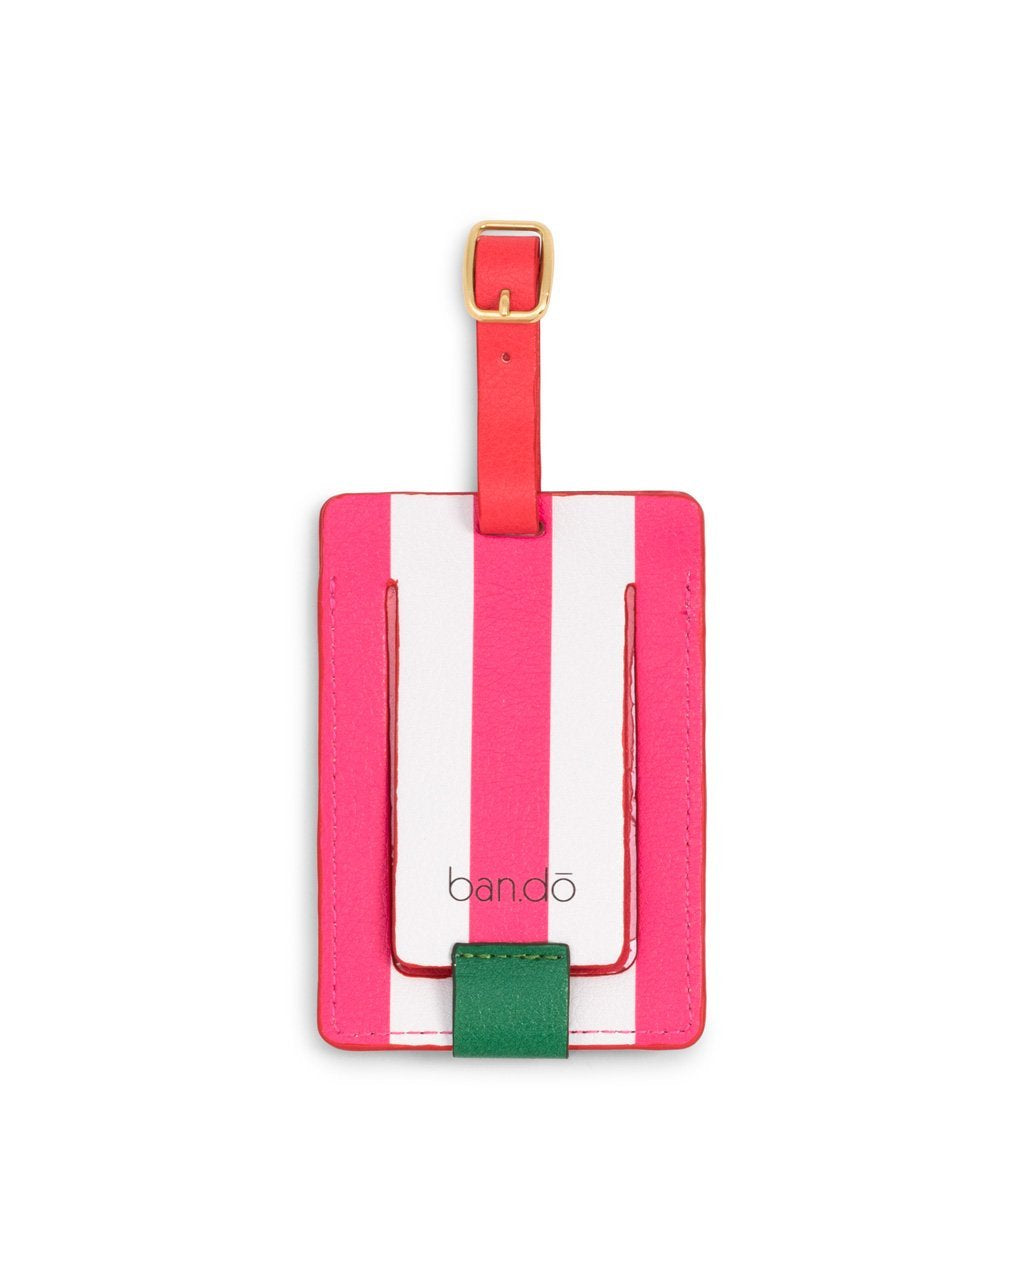 Luggage tag with PVC window on the back